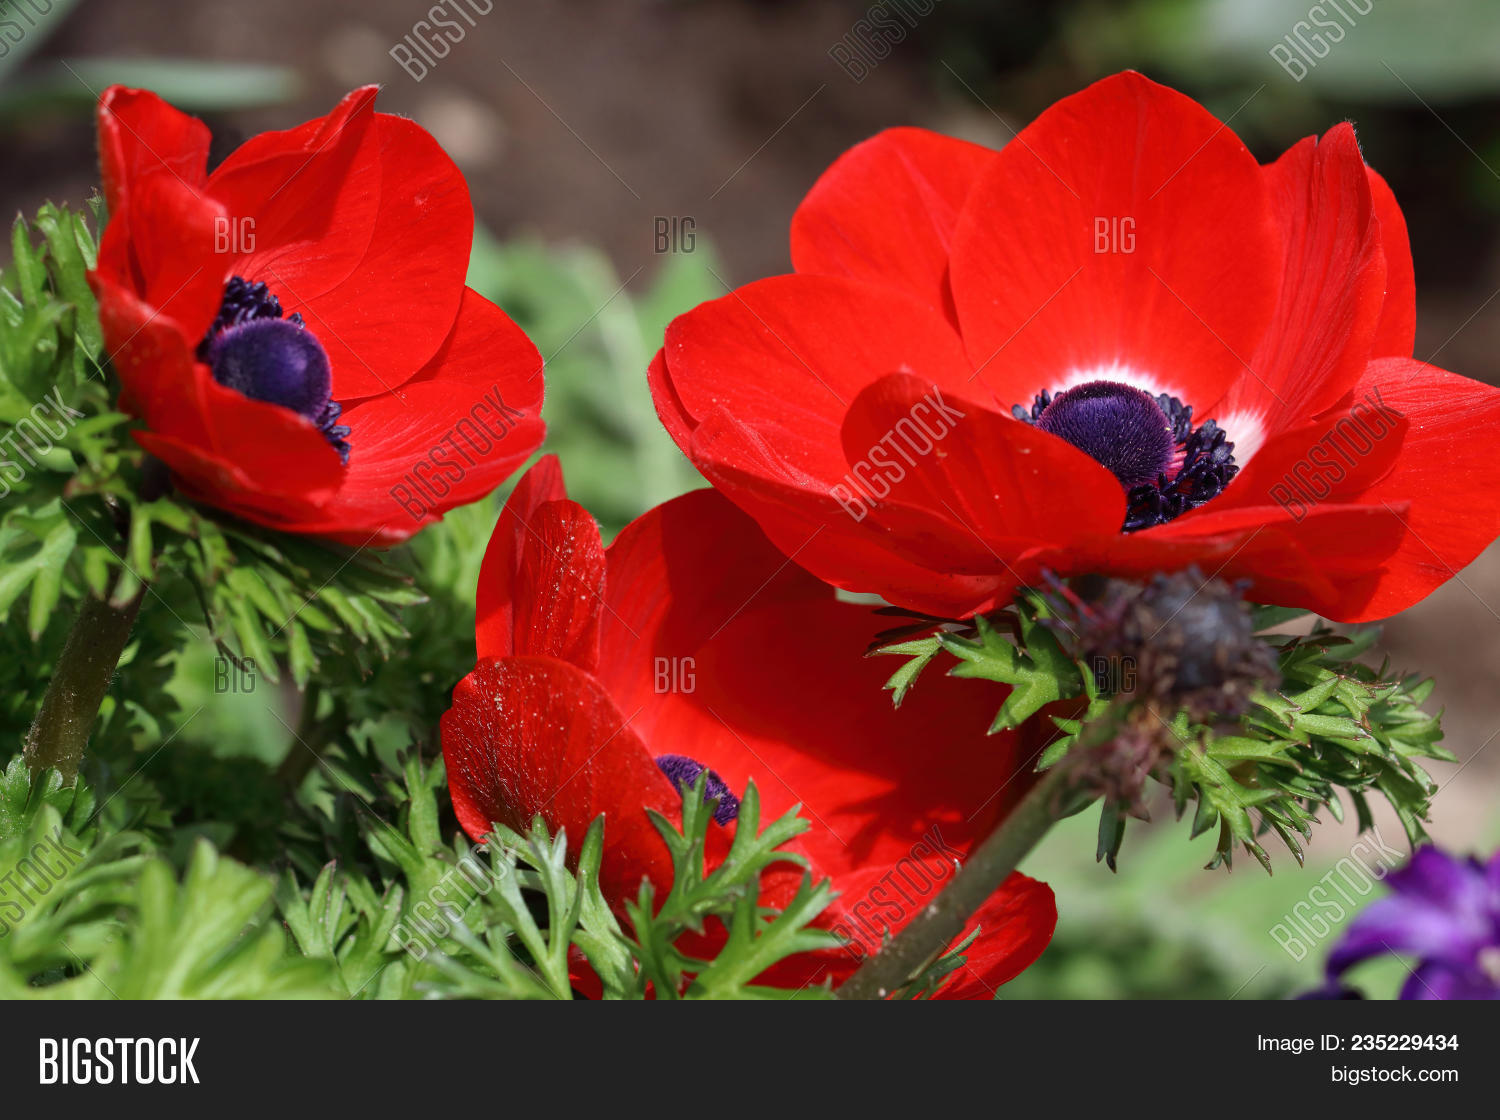 The Red Anemone Flower With The Black Heart . Anemones- Anemone Are Perennial Herbs From